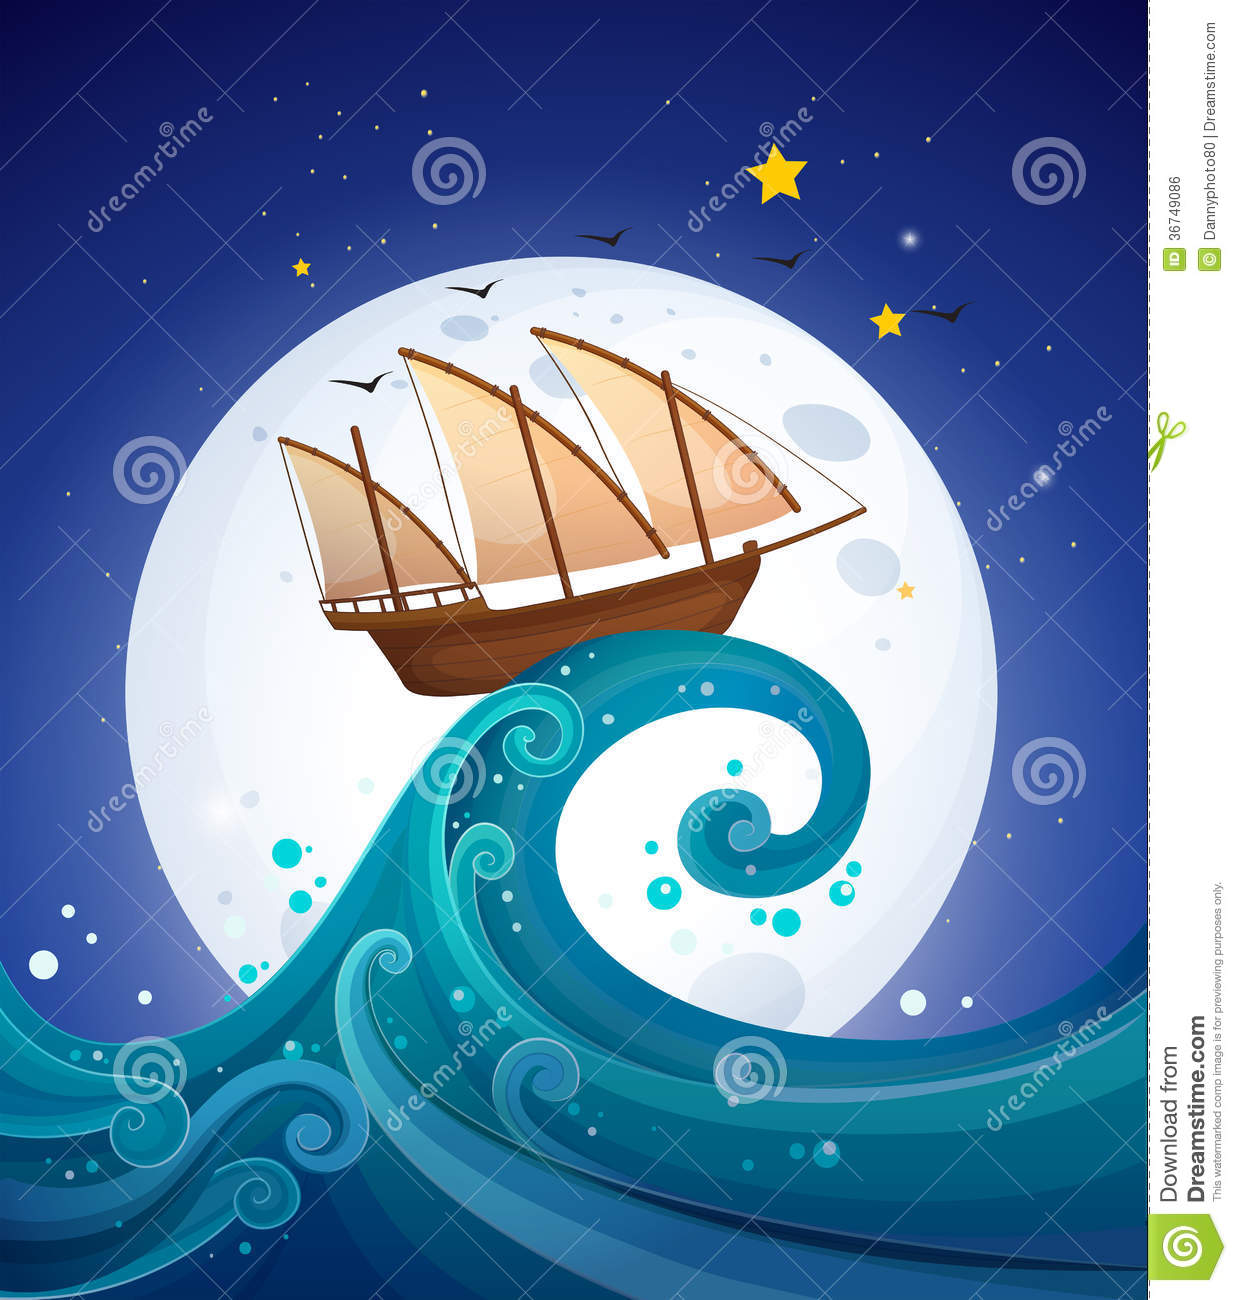 A Wooden Boat Above The High Wave Stock Illustration ...